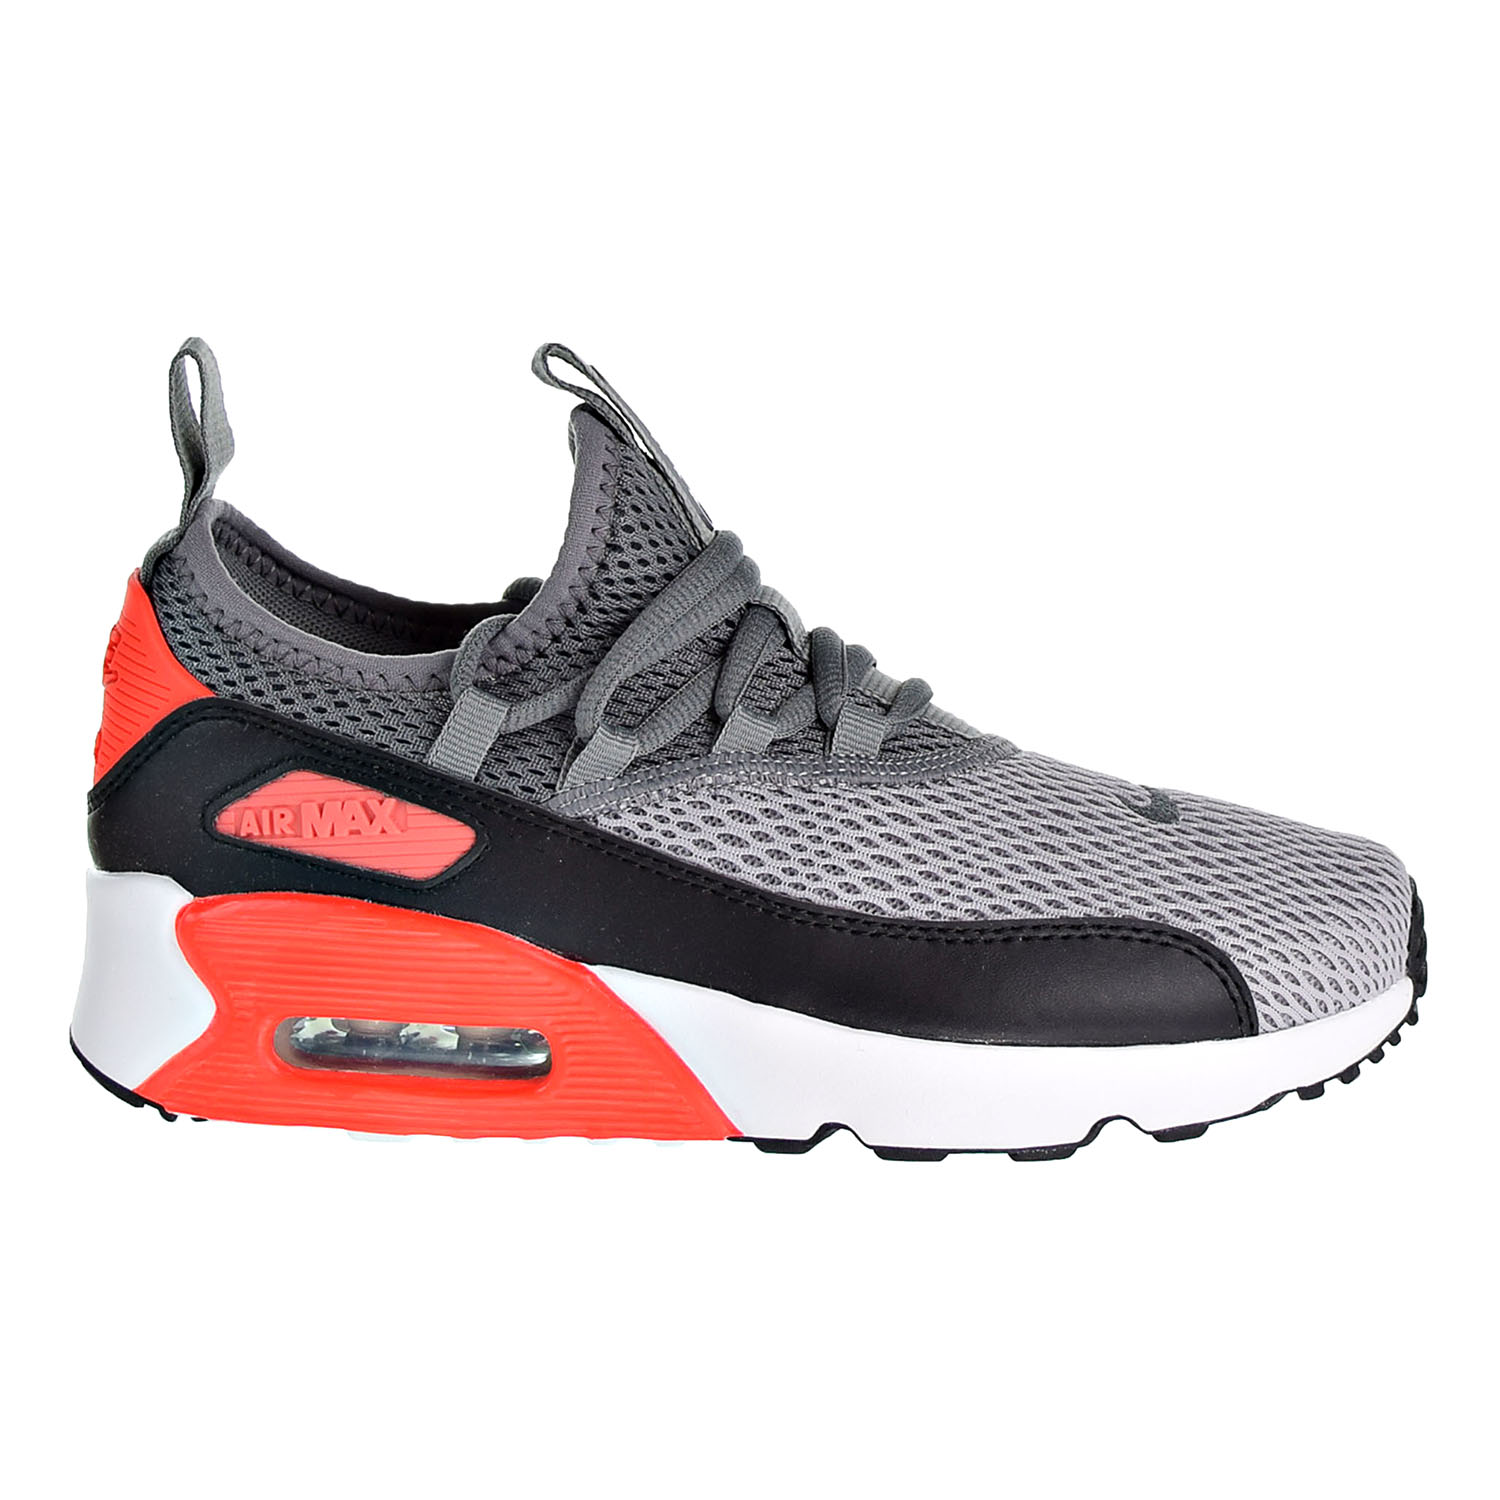 Details about Nike Air Max 90 Ez (GS) Boys Shoes Wolf Grey Cool Grey Black AH5211 002